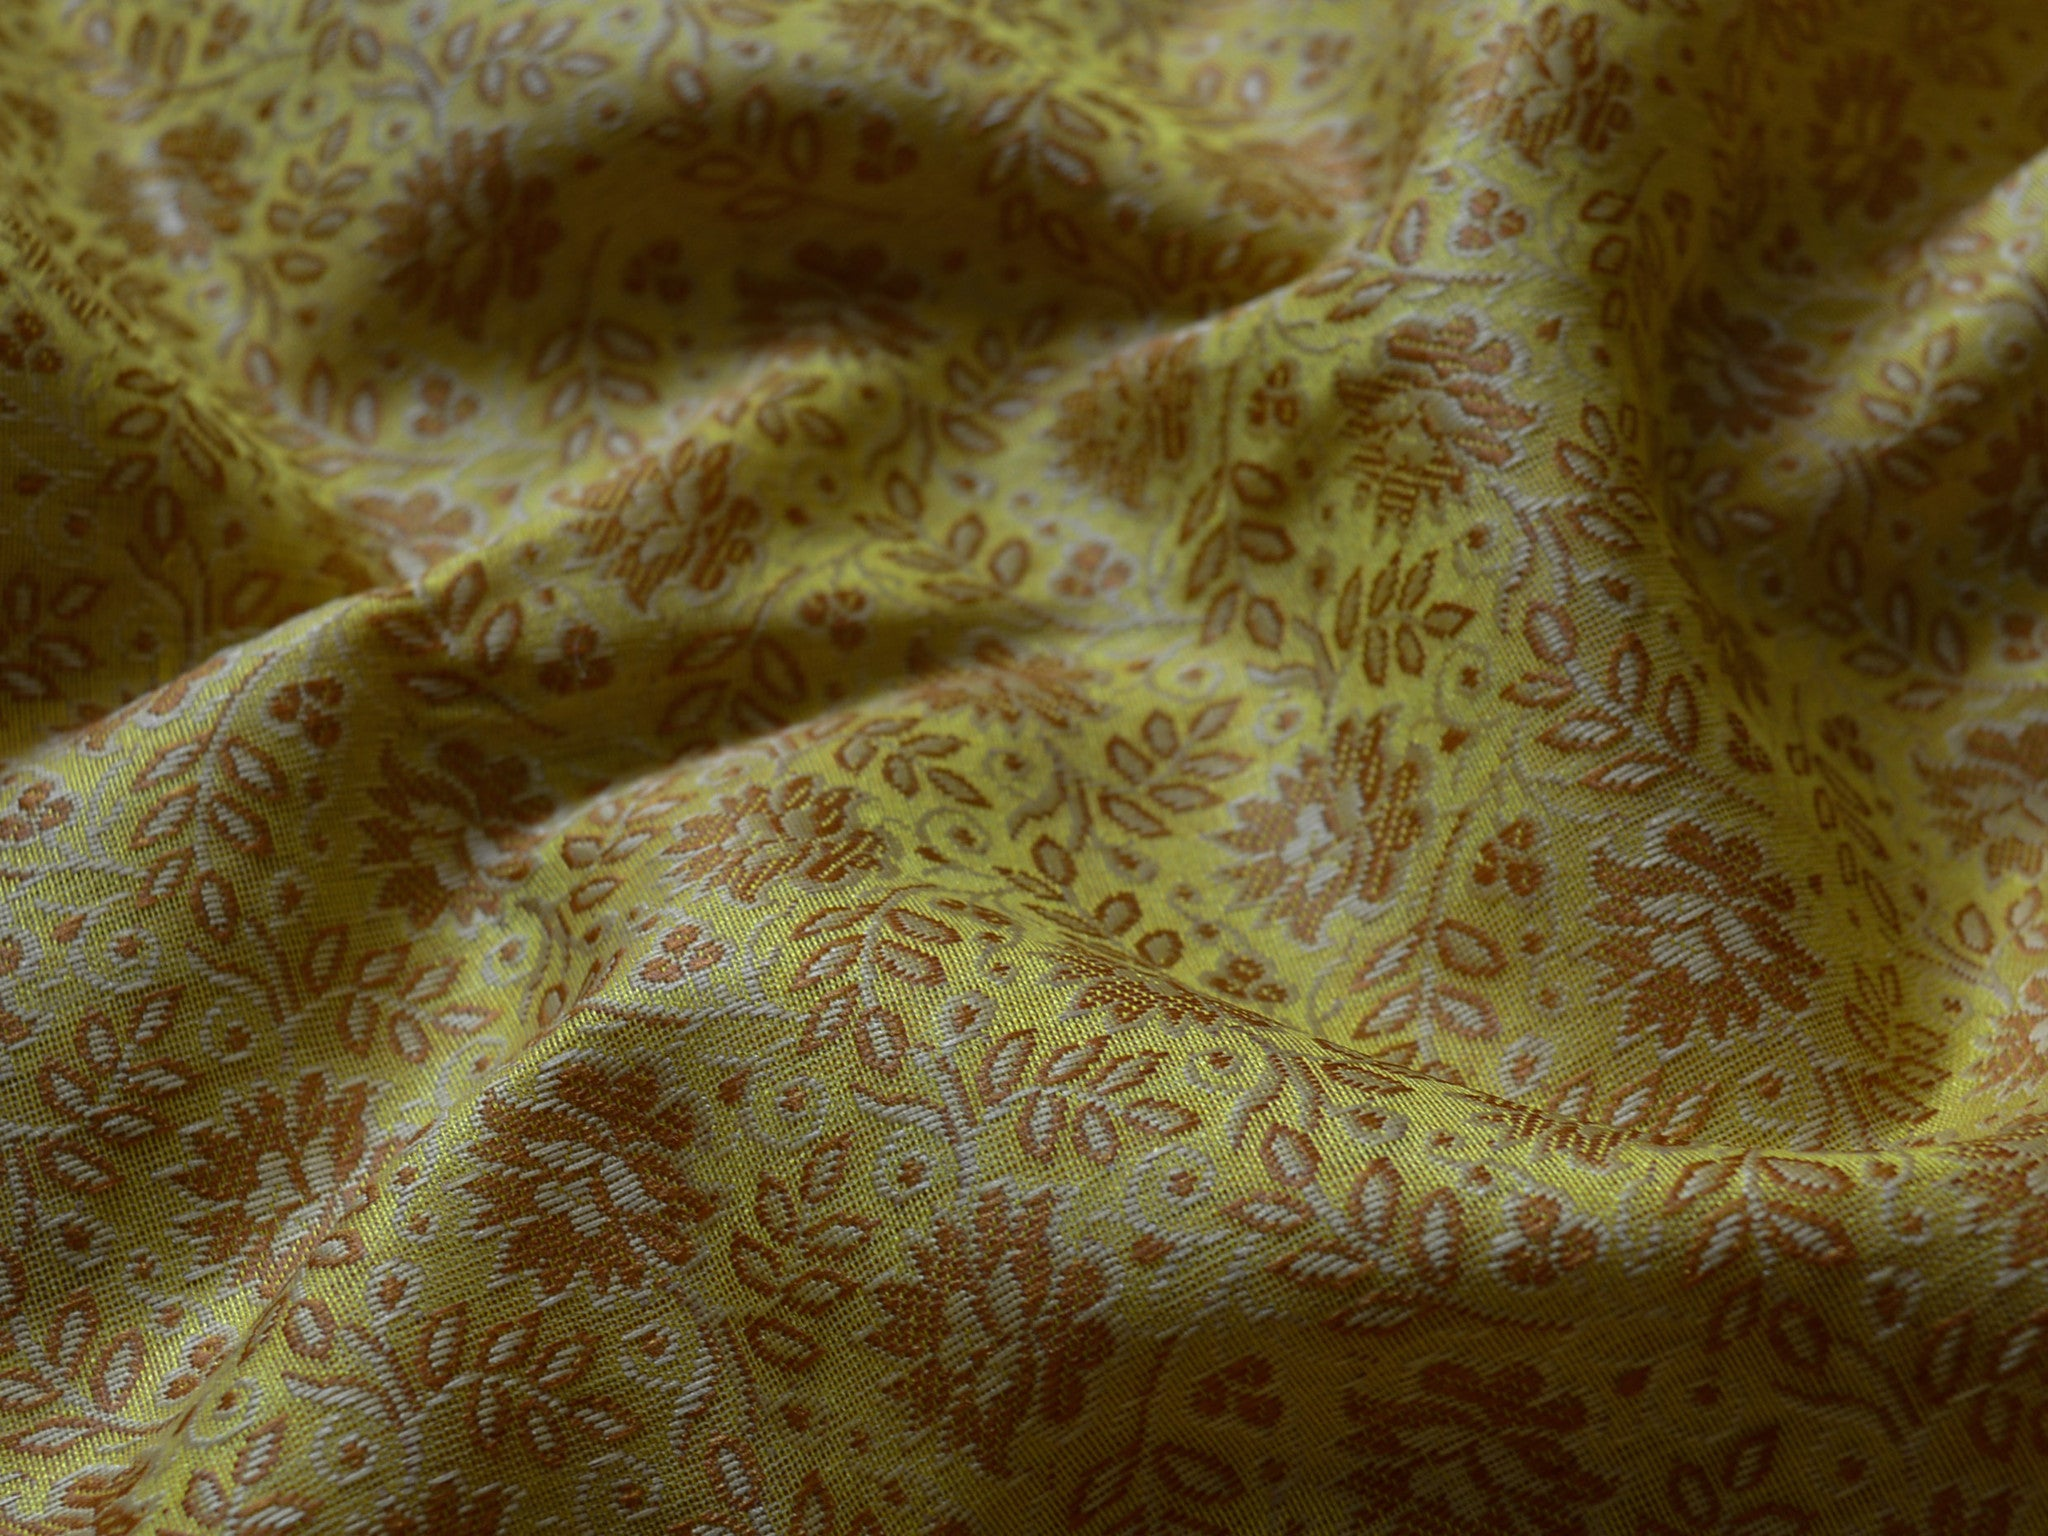 Banarasee/Banarasi Salwar Kameez Cotton Silk Resham Buti Woven Fabric-Yellow